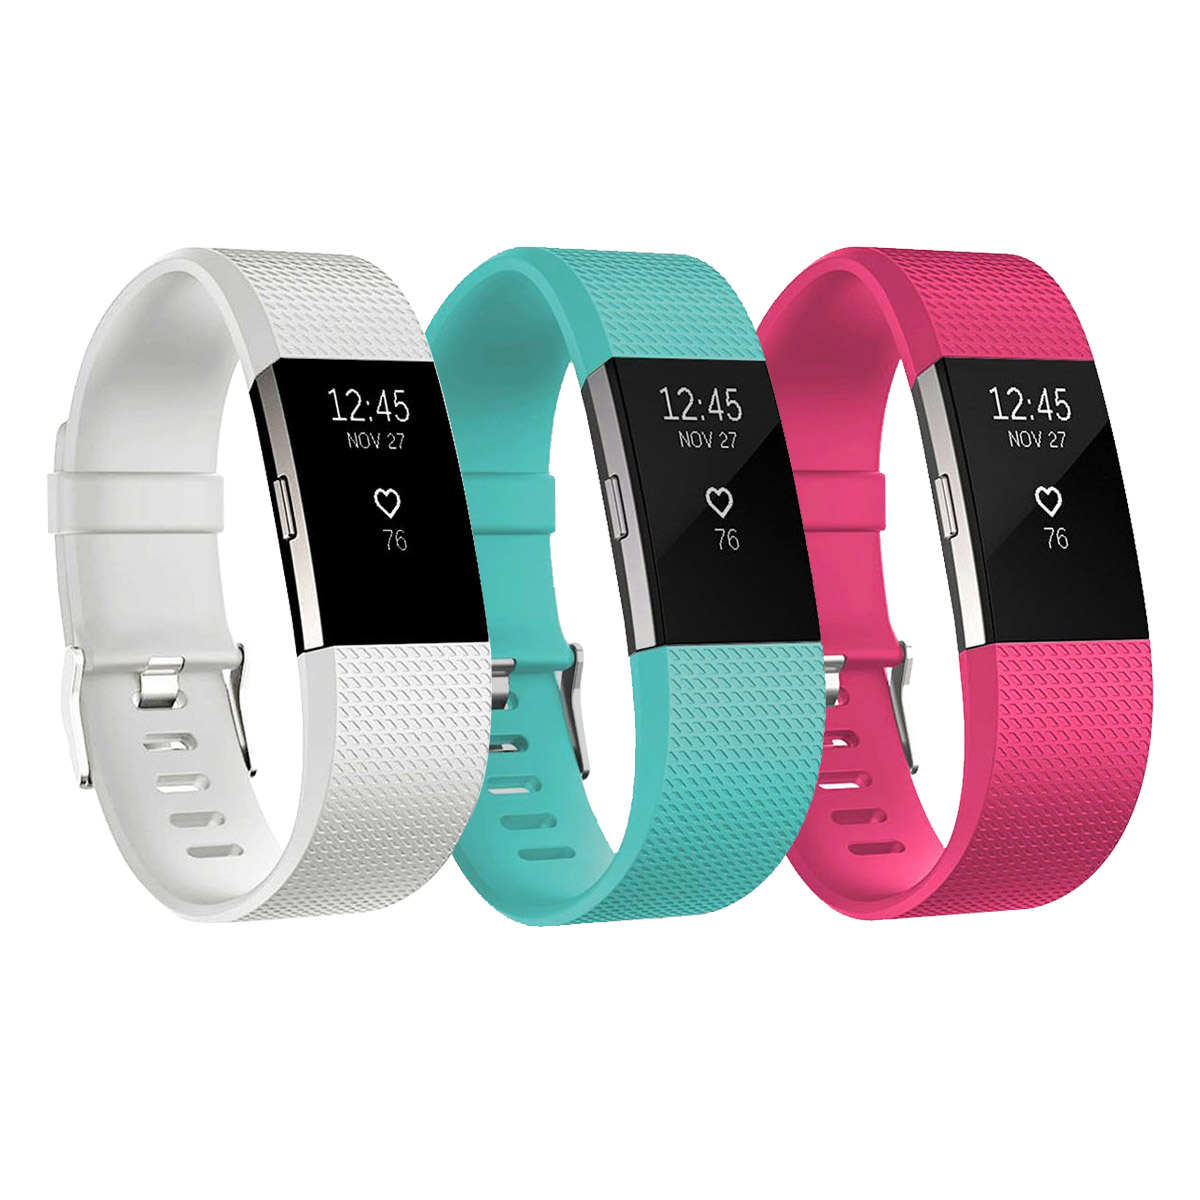 3-pack Soft Replacement Silicone Watch Band Wrist Strap for Fitbit Charge 2